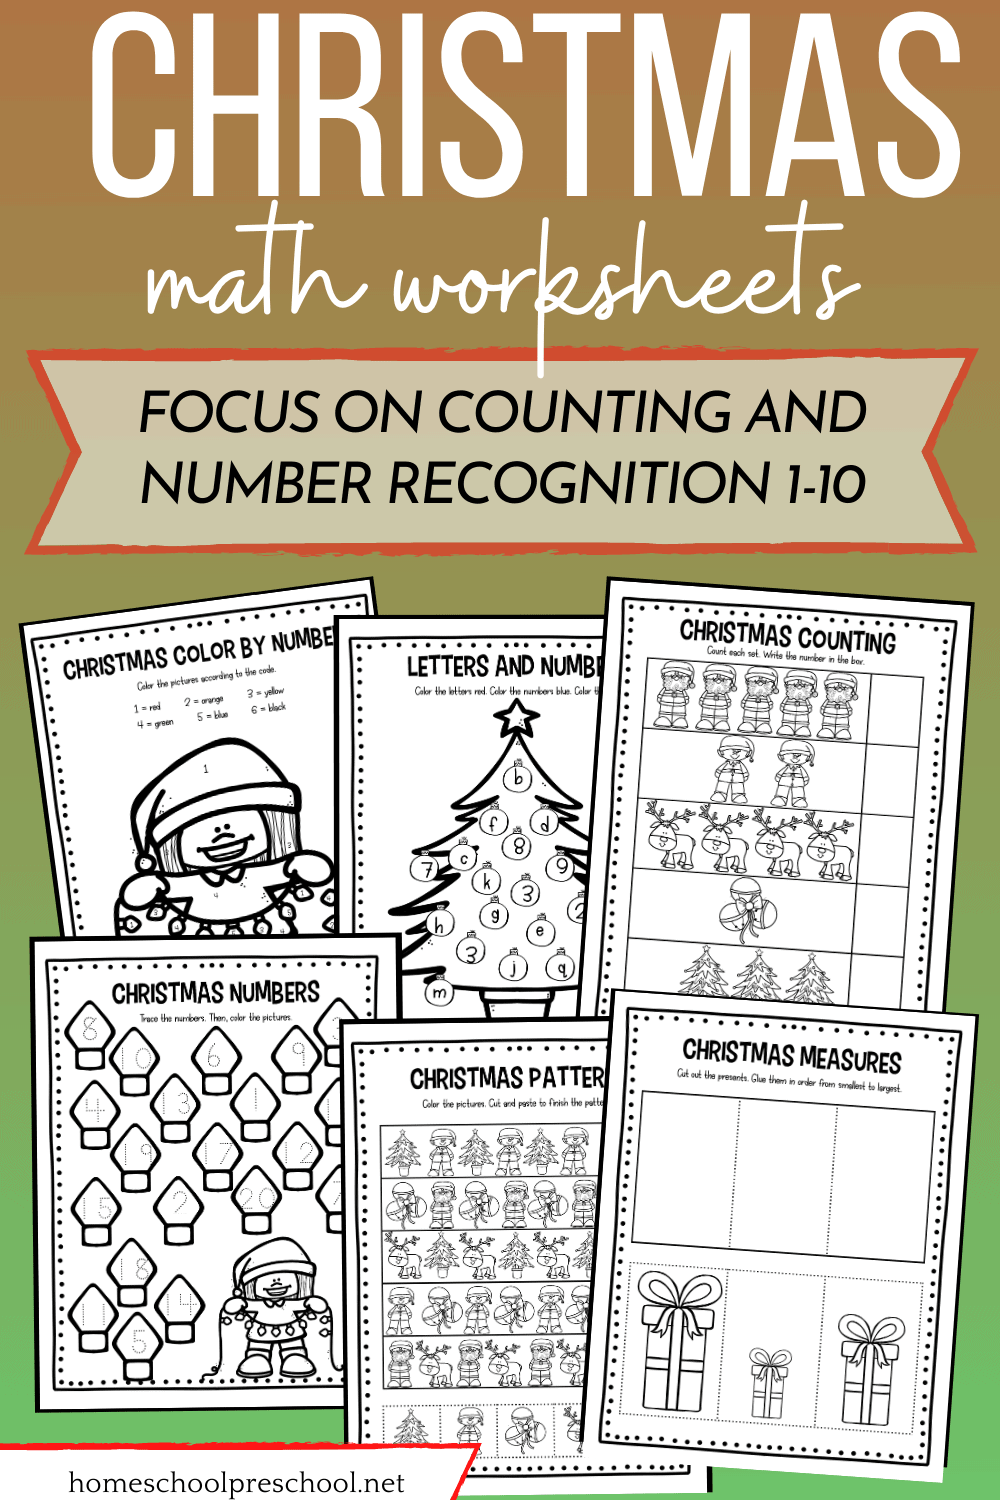 Free Christmas Math Worksheets For Preschoolers